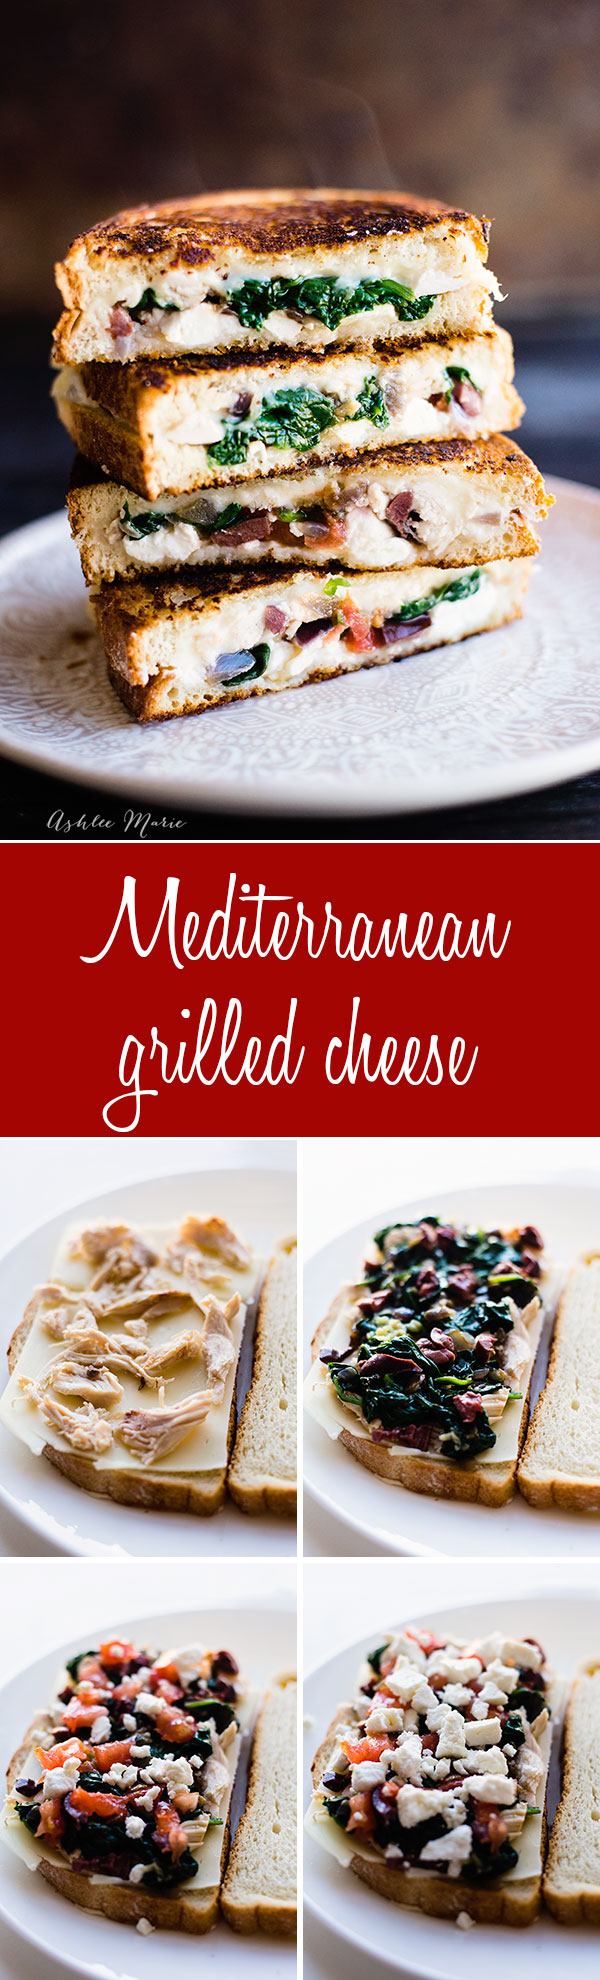 filled with all the flavors of the Mediterranean this grilled cheese is a fun take on a classic sandwhich